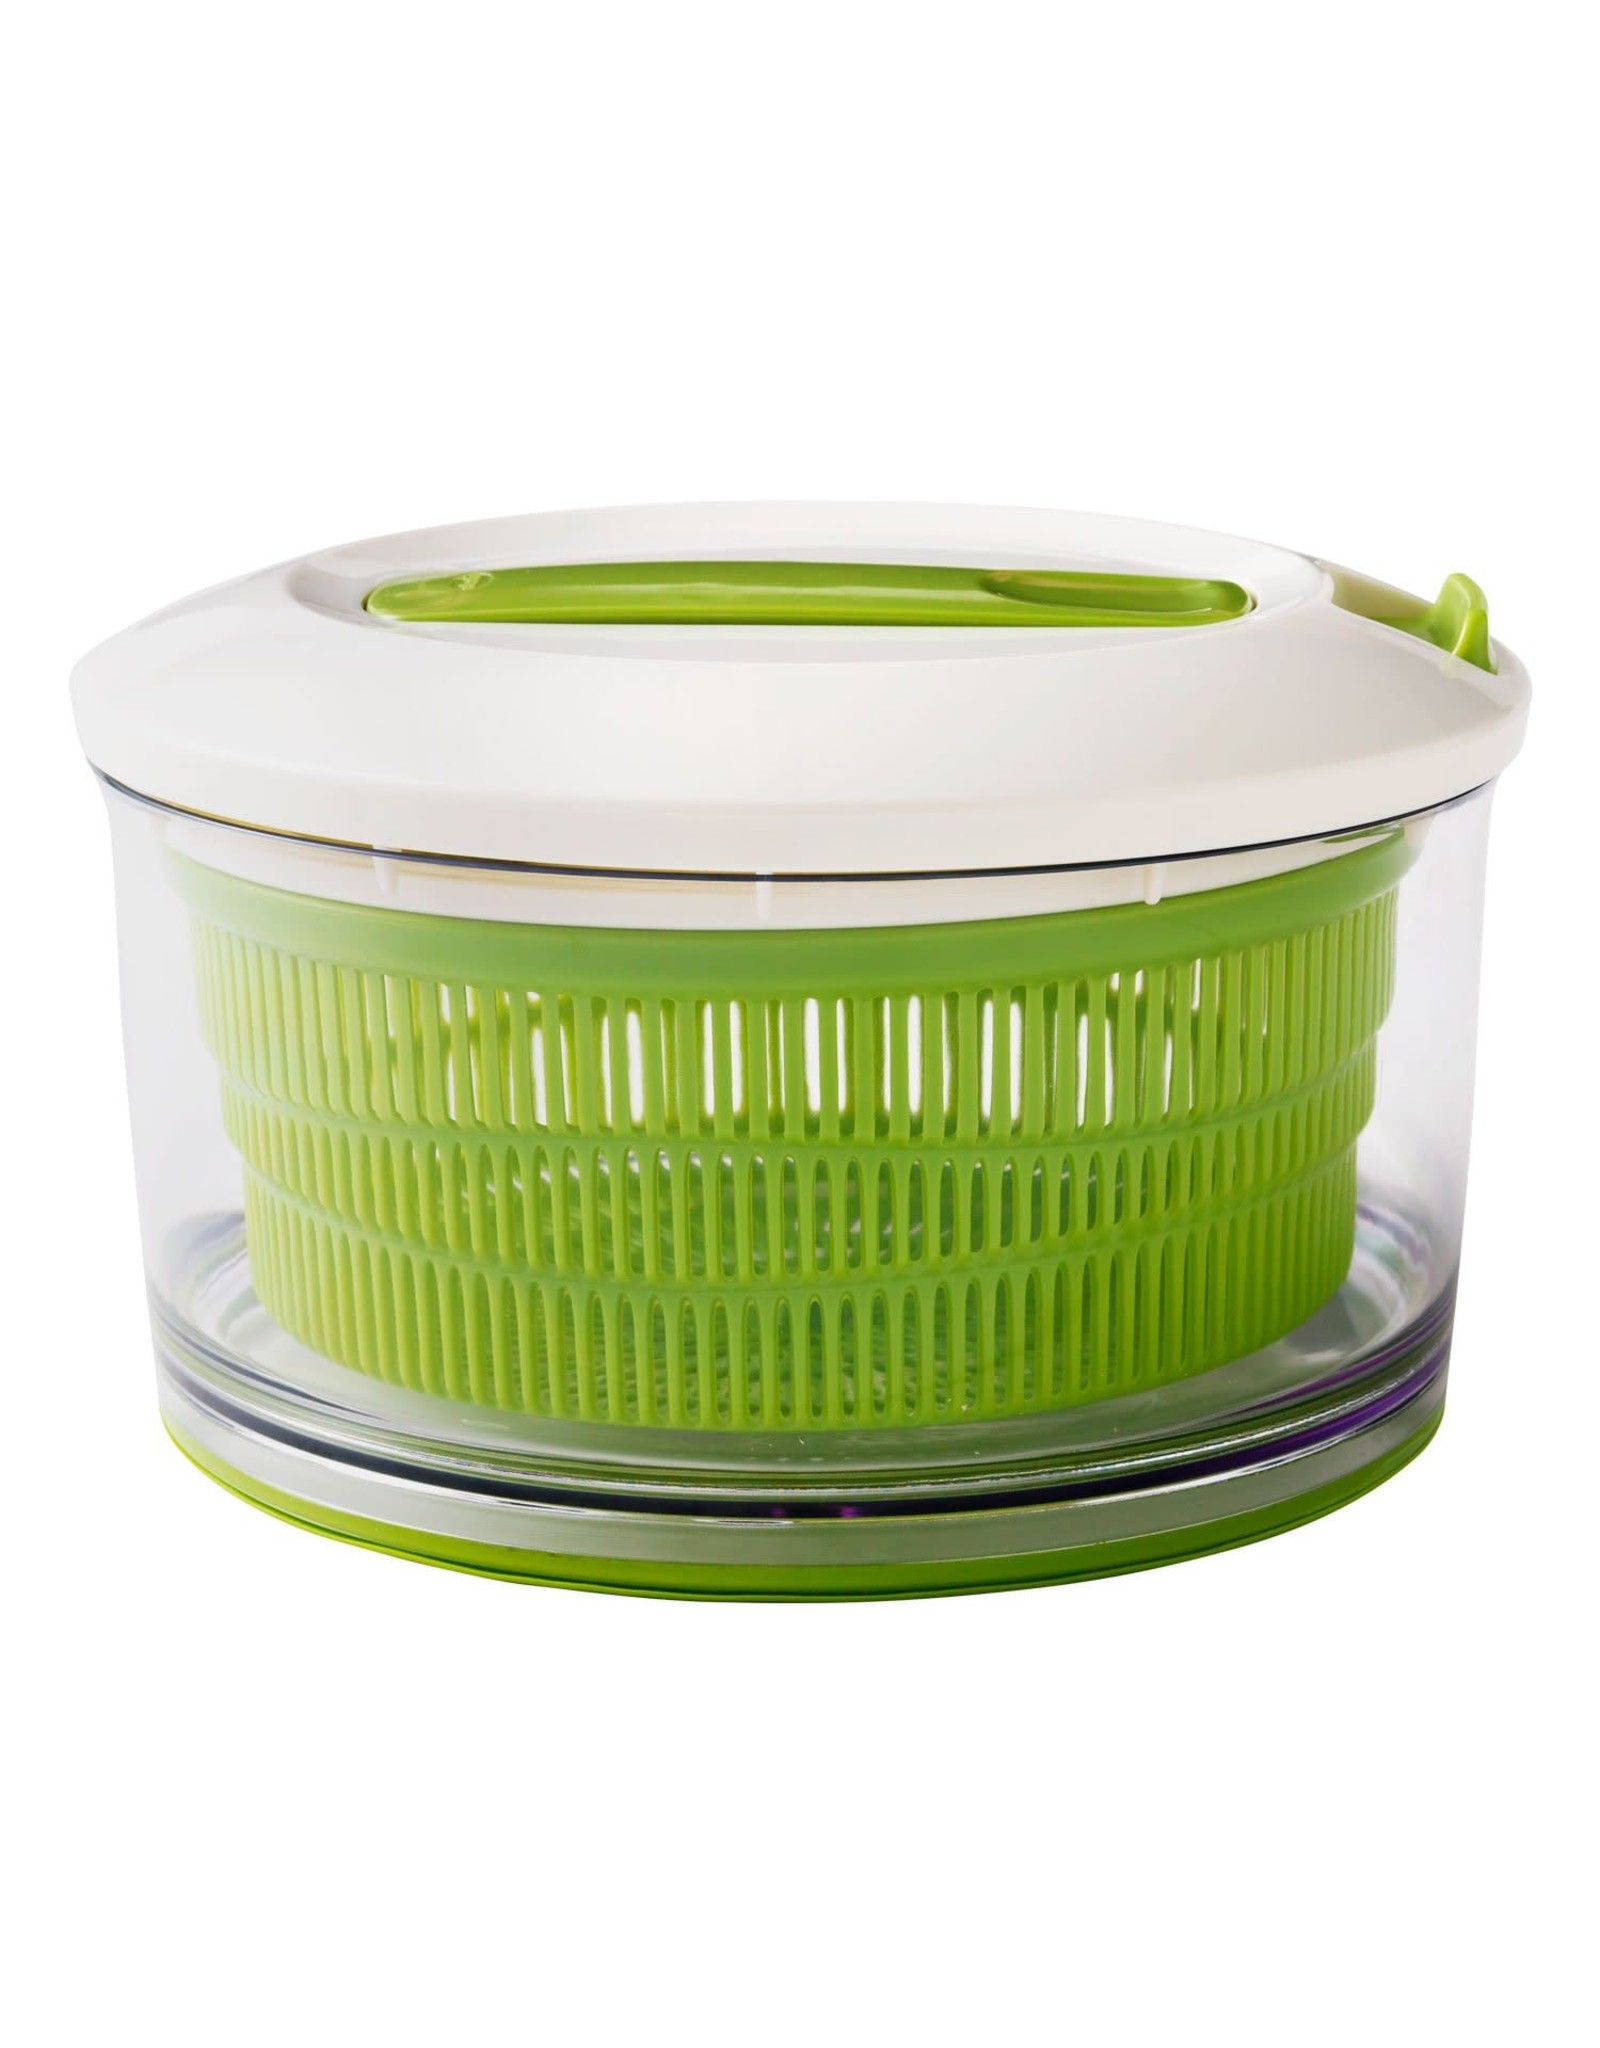 Chef'n CHEF Cycle Salad Spinner Sml